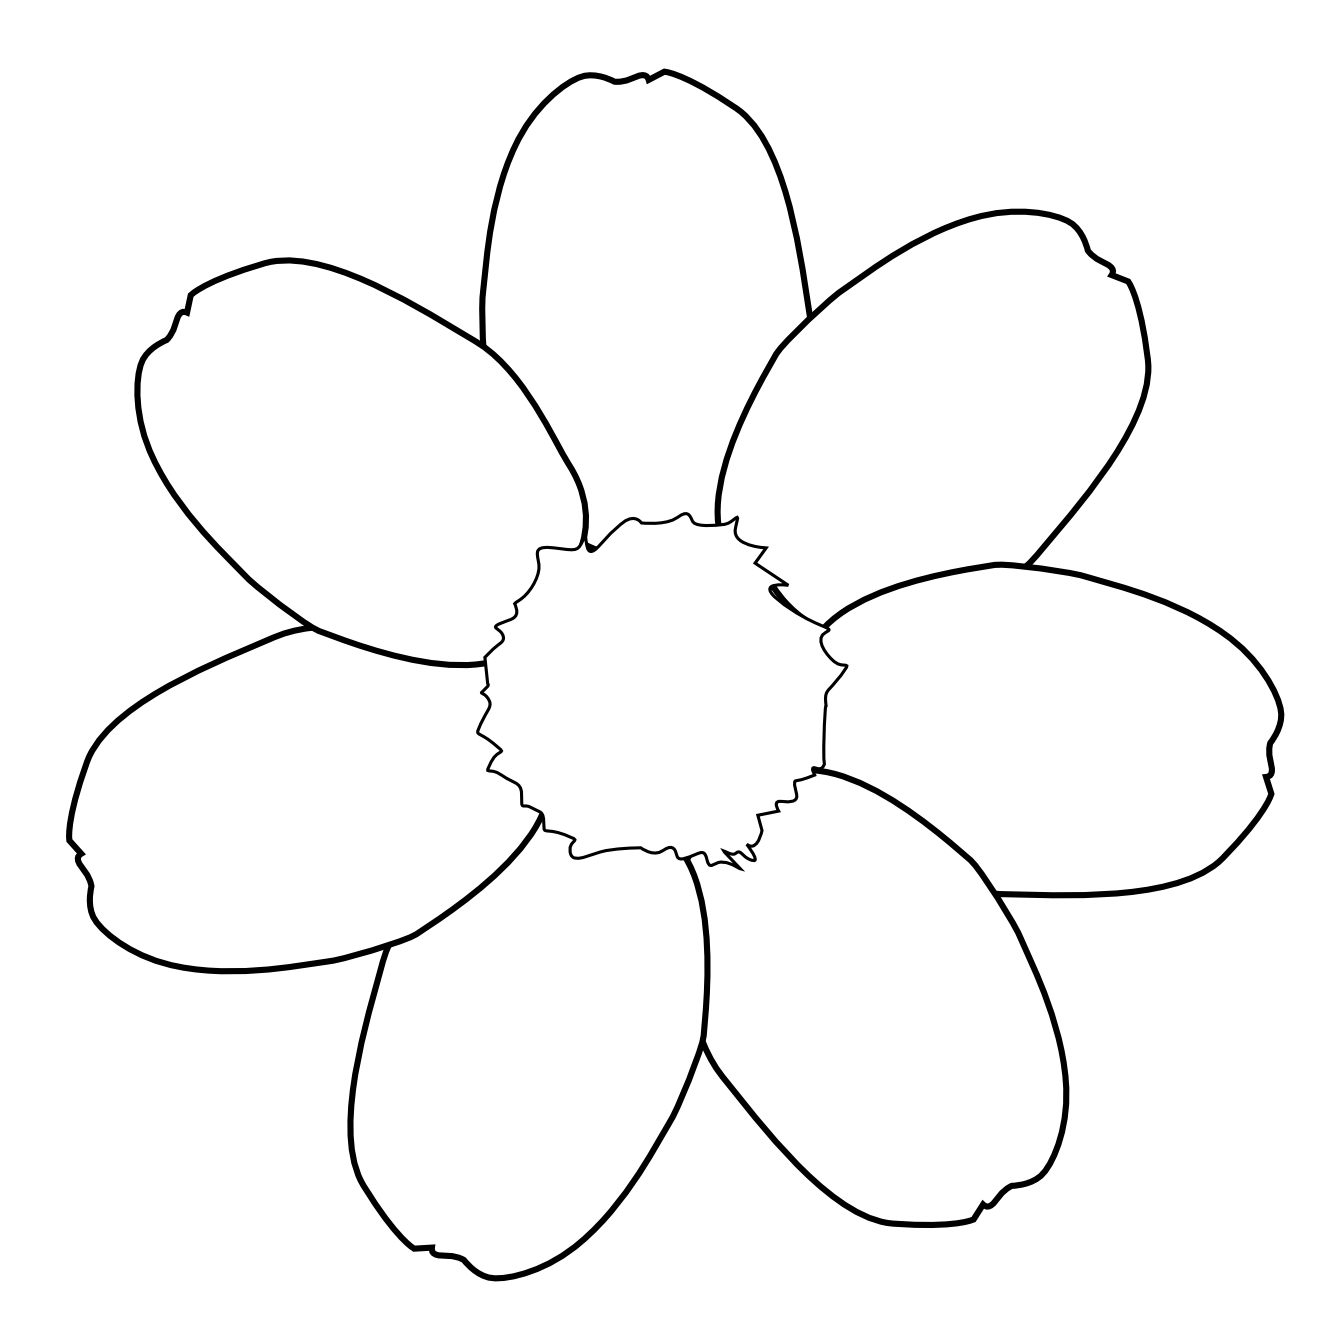 Black white flower tattoos cliparts daisy flower black white line art tattoo clip art clip art clip mightylinksfo Image collections